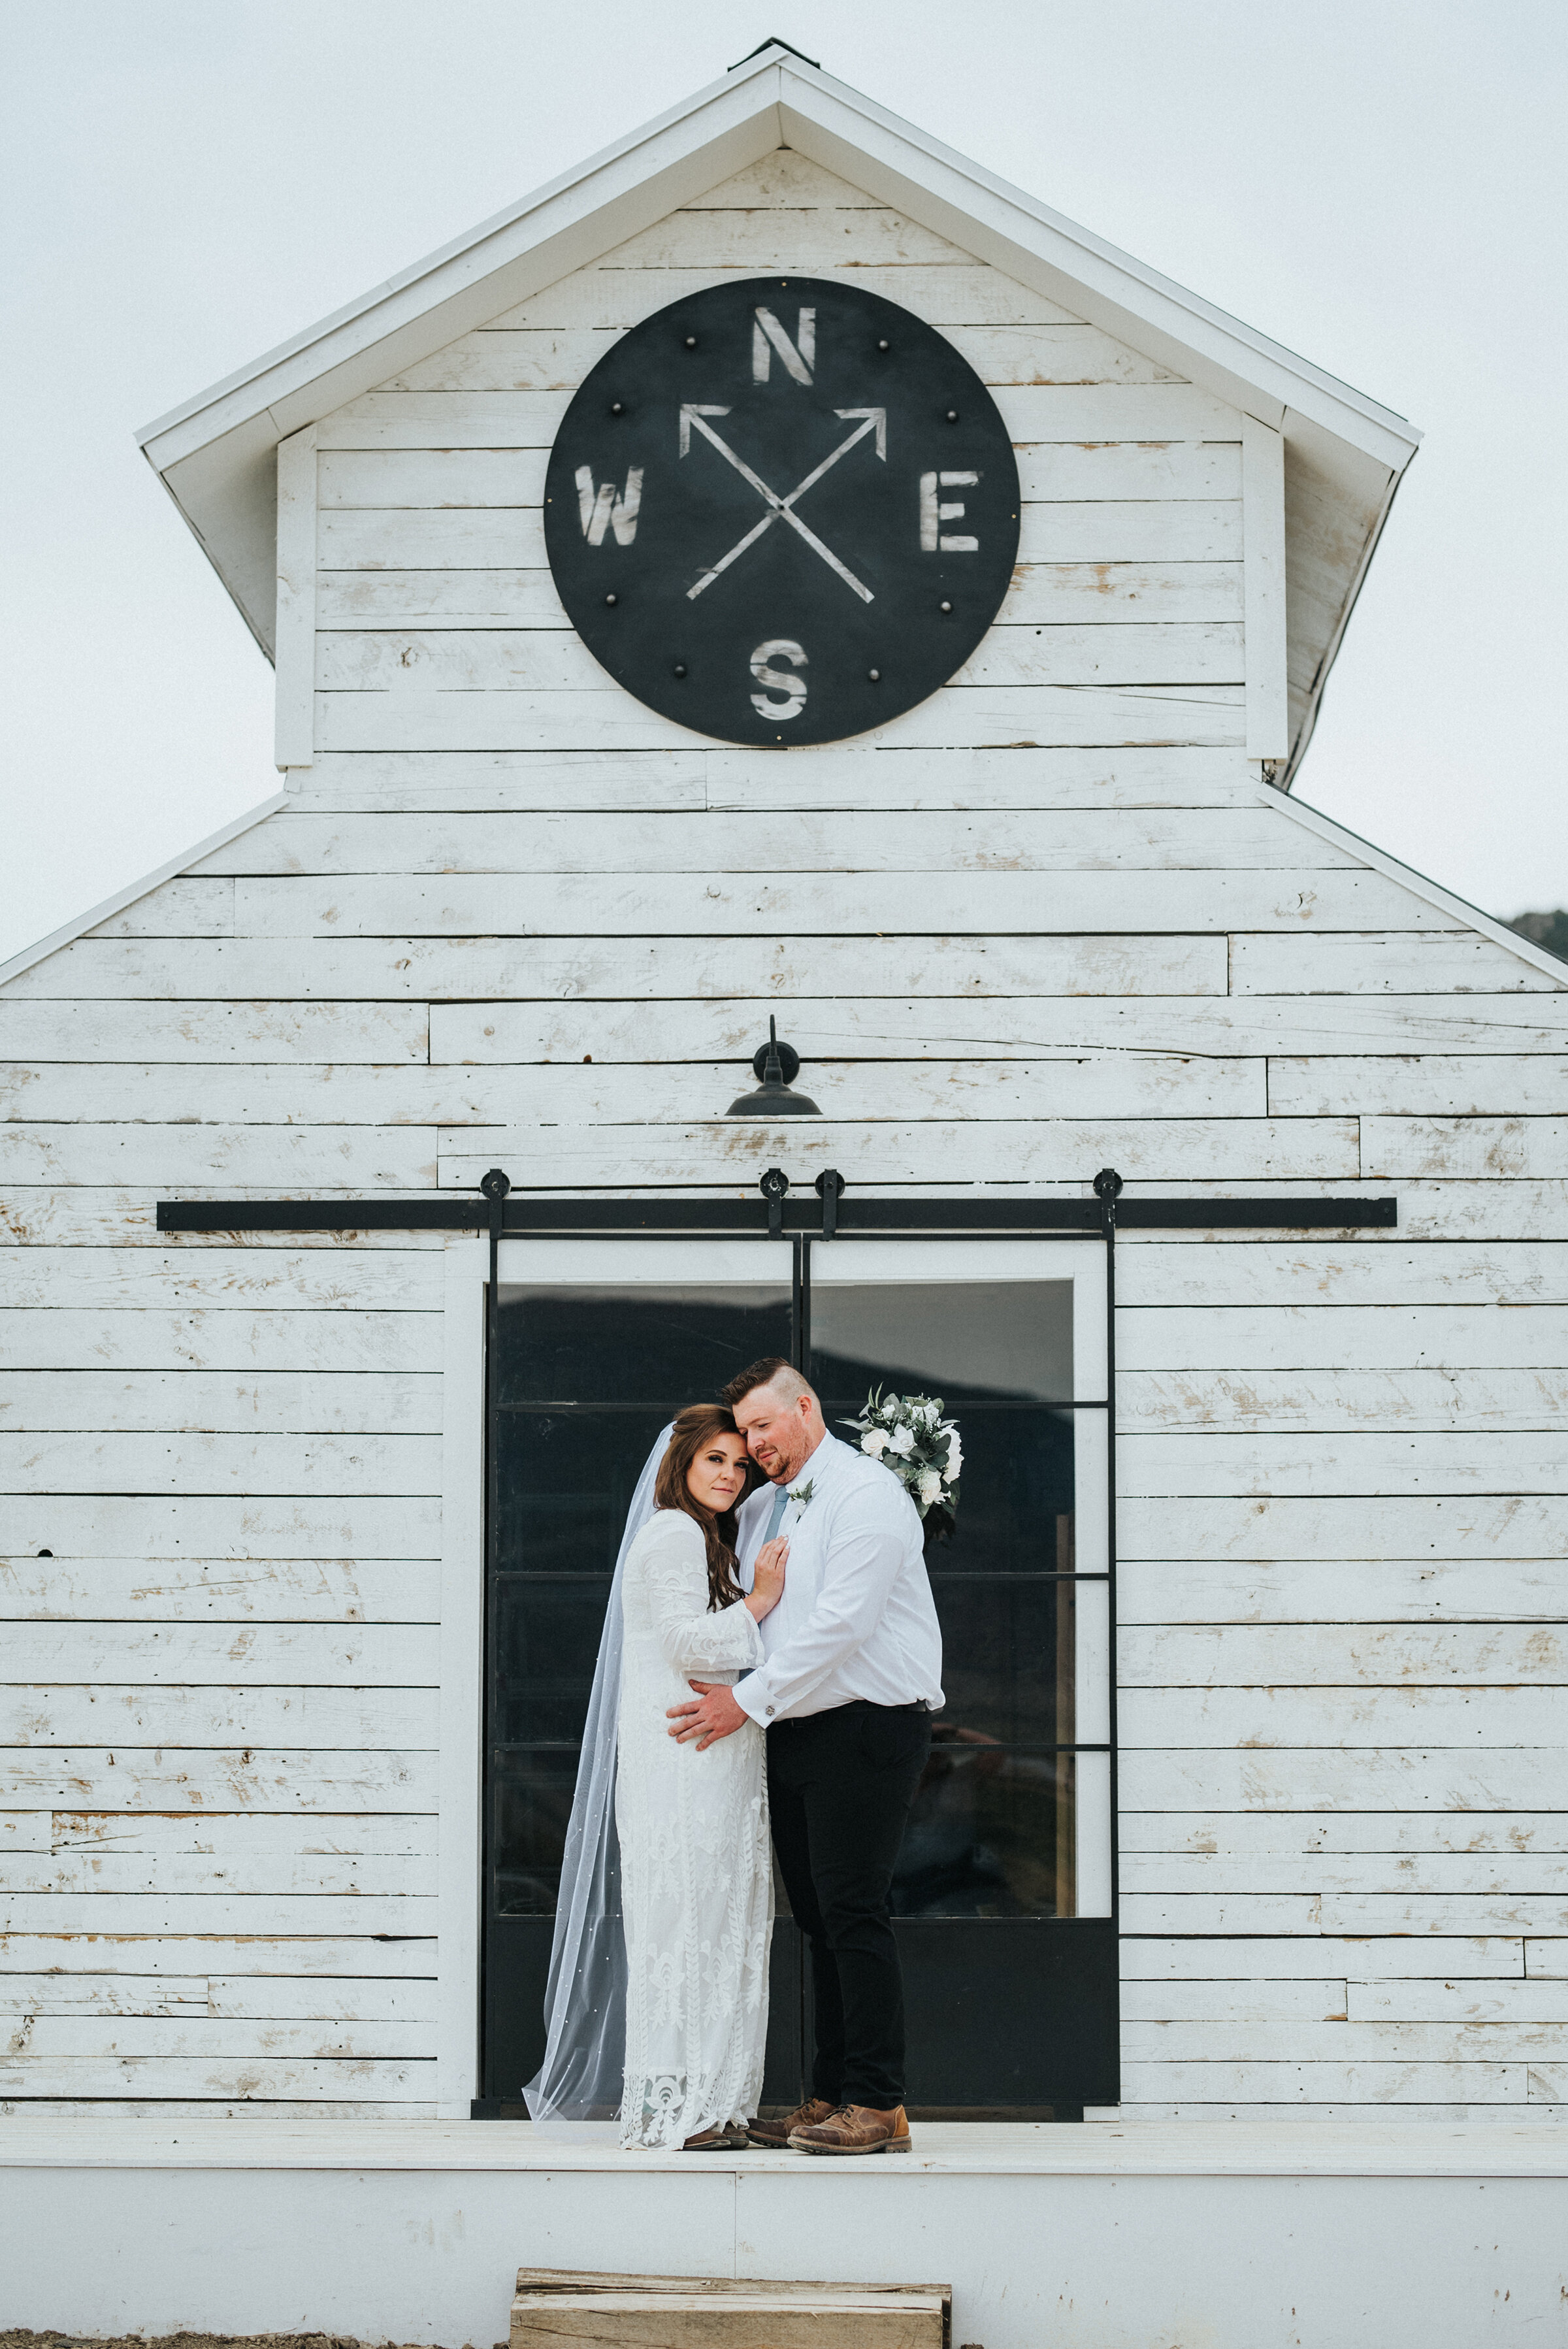 The perfect accent building on this Airbnb property for the bride and groom to stand in front of. White barn rustic western authentic intimate photoshoot in Ephraim Utah photography wedding outdoor location western inspired rustic Airbnb photo aesthetic #ephraimutah #utahphotography #weddingdayphotography #gettingmarried #rusticwedding #utahwedding #westernstyle #weddingphotoshoot